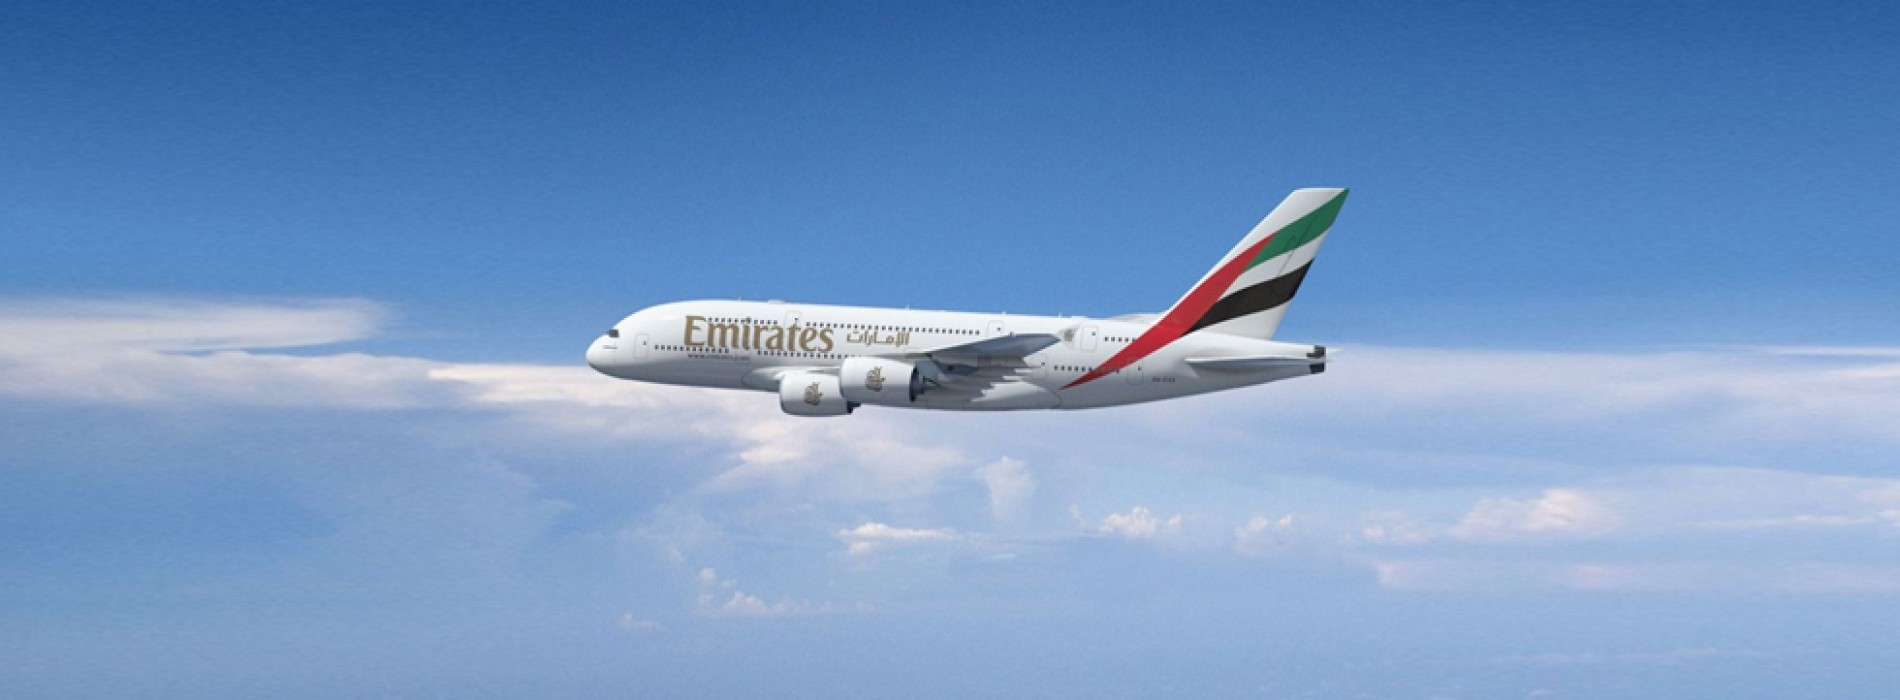 Emirates welcomes 100th Airbus A380 to fleet